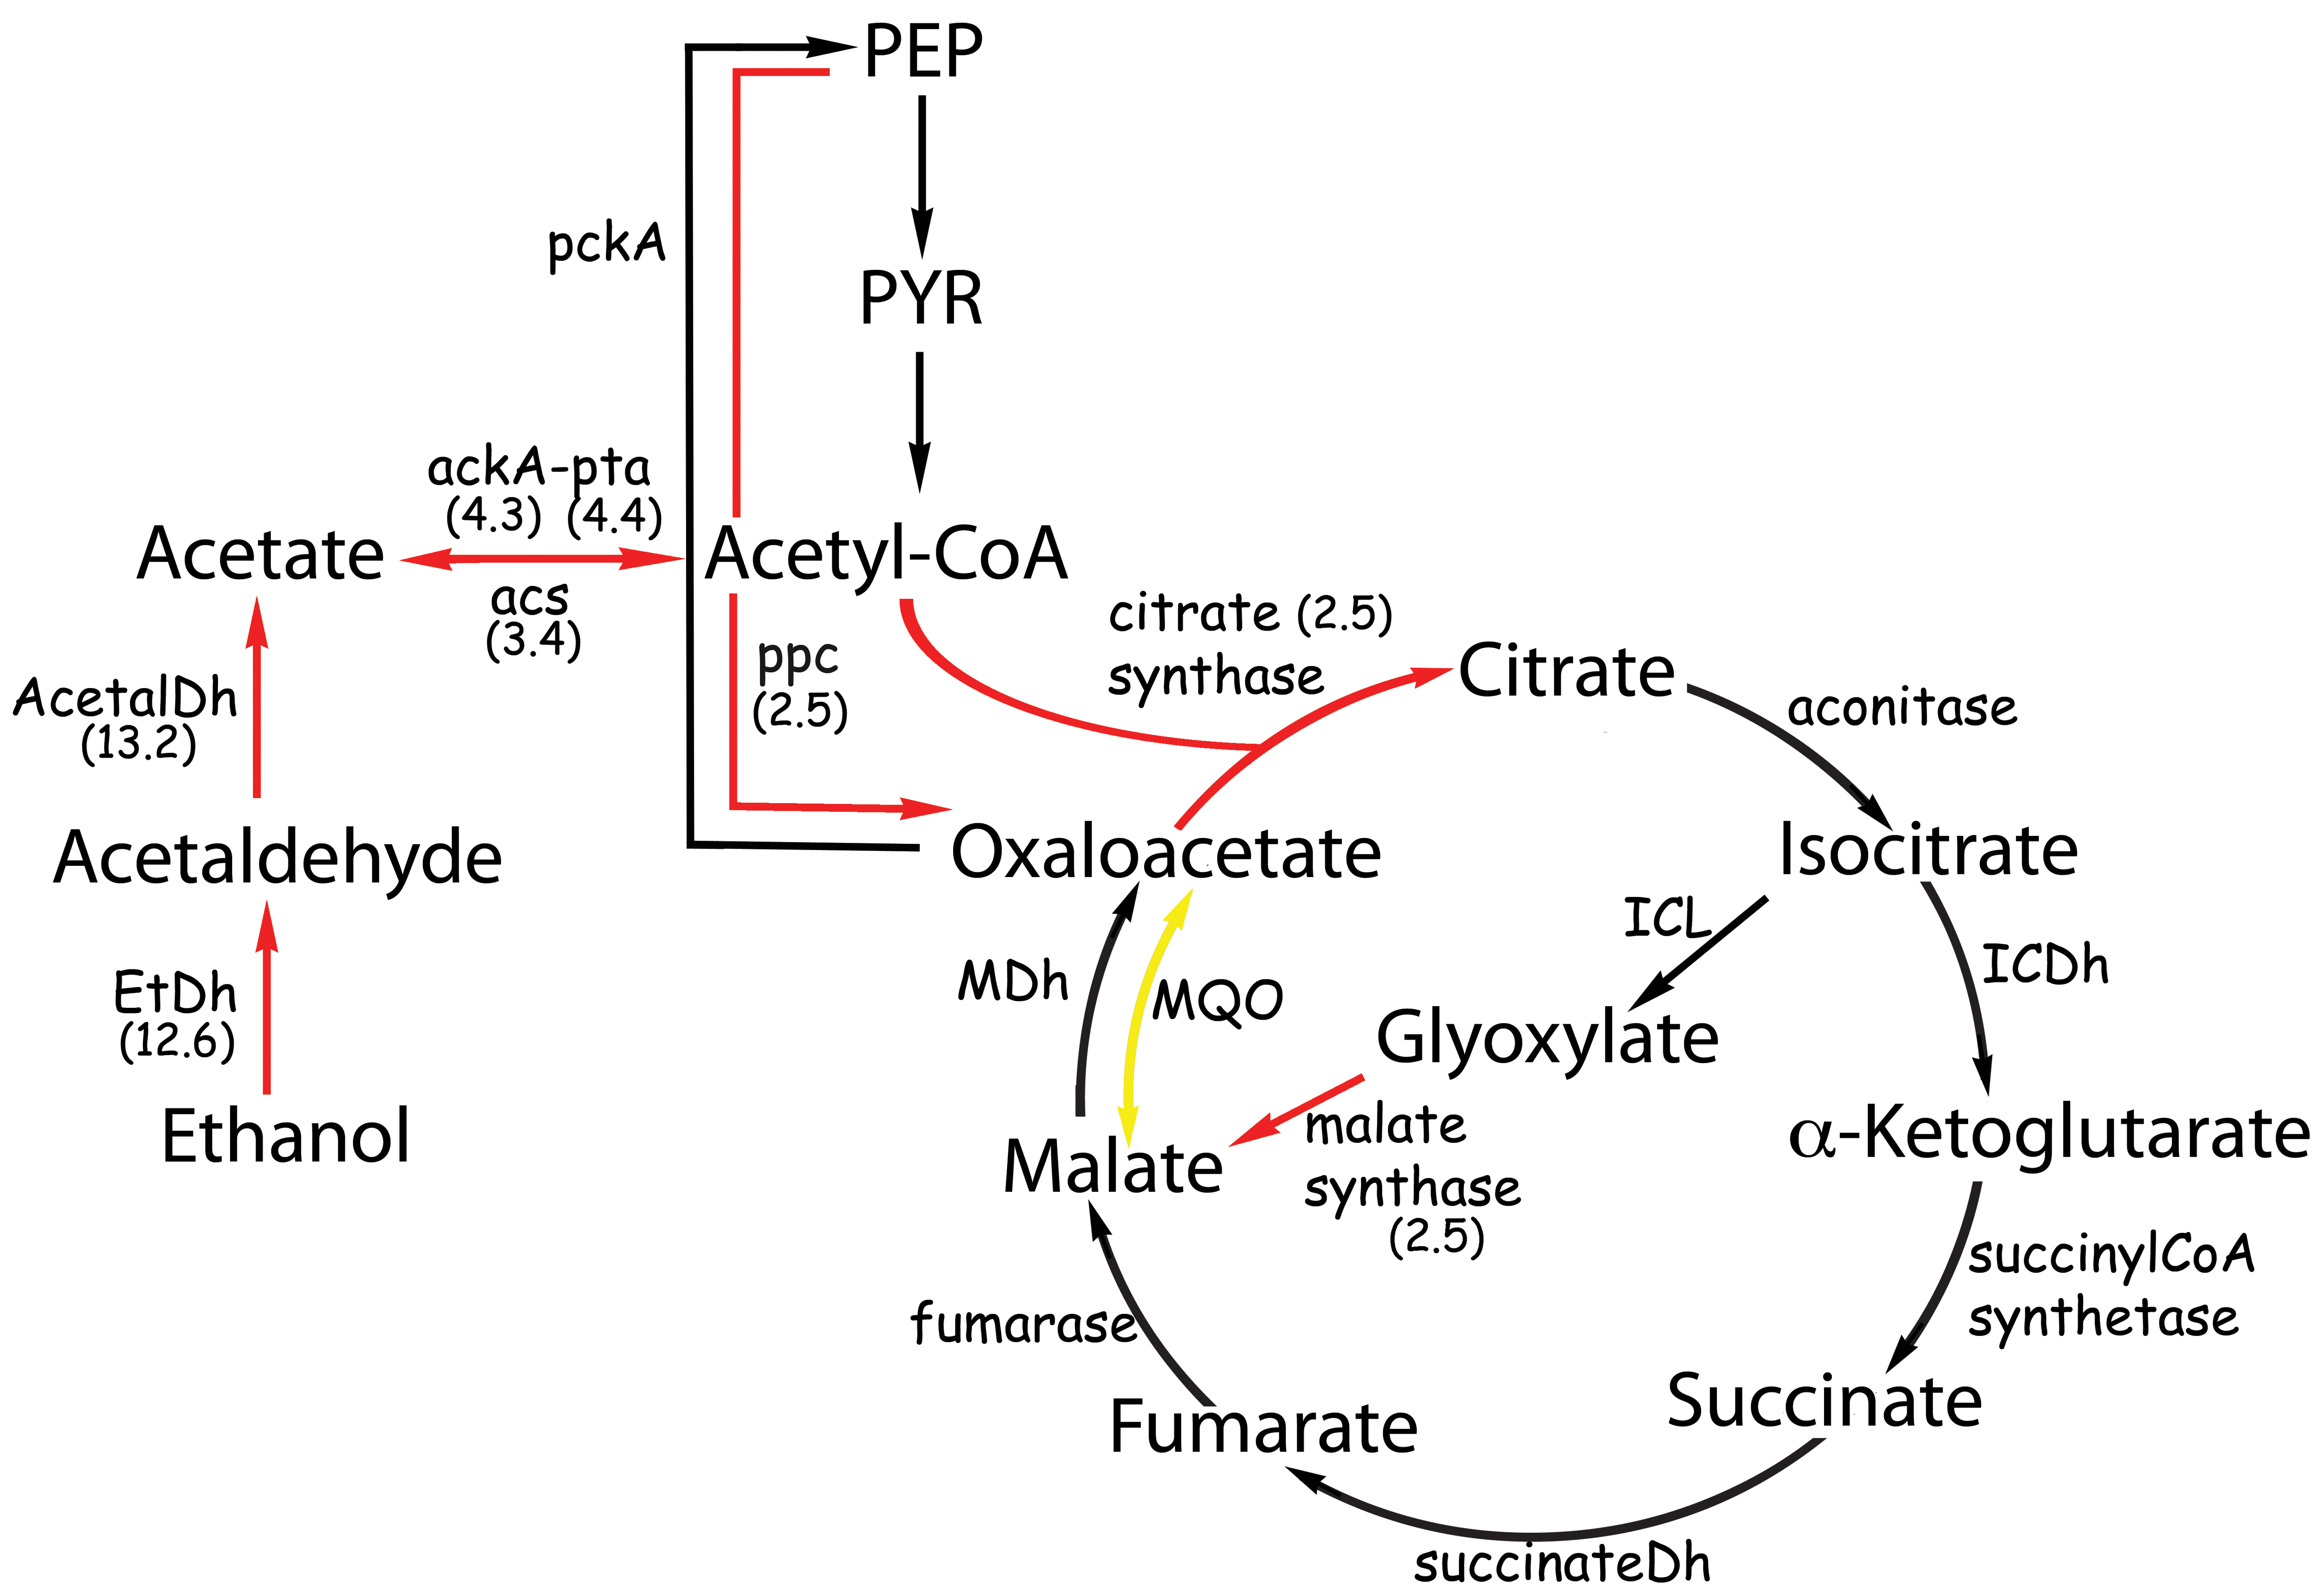 Metabolic pathways affected by the presence of ethanol.